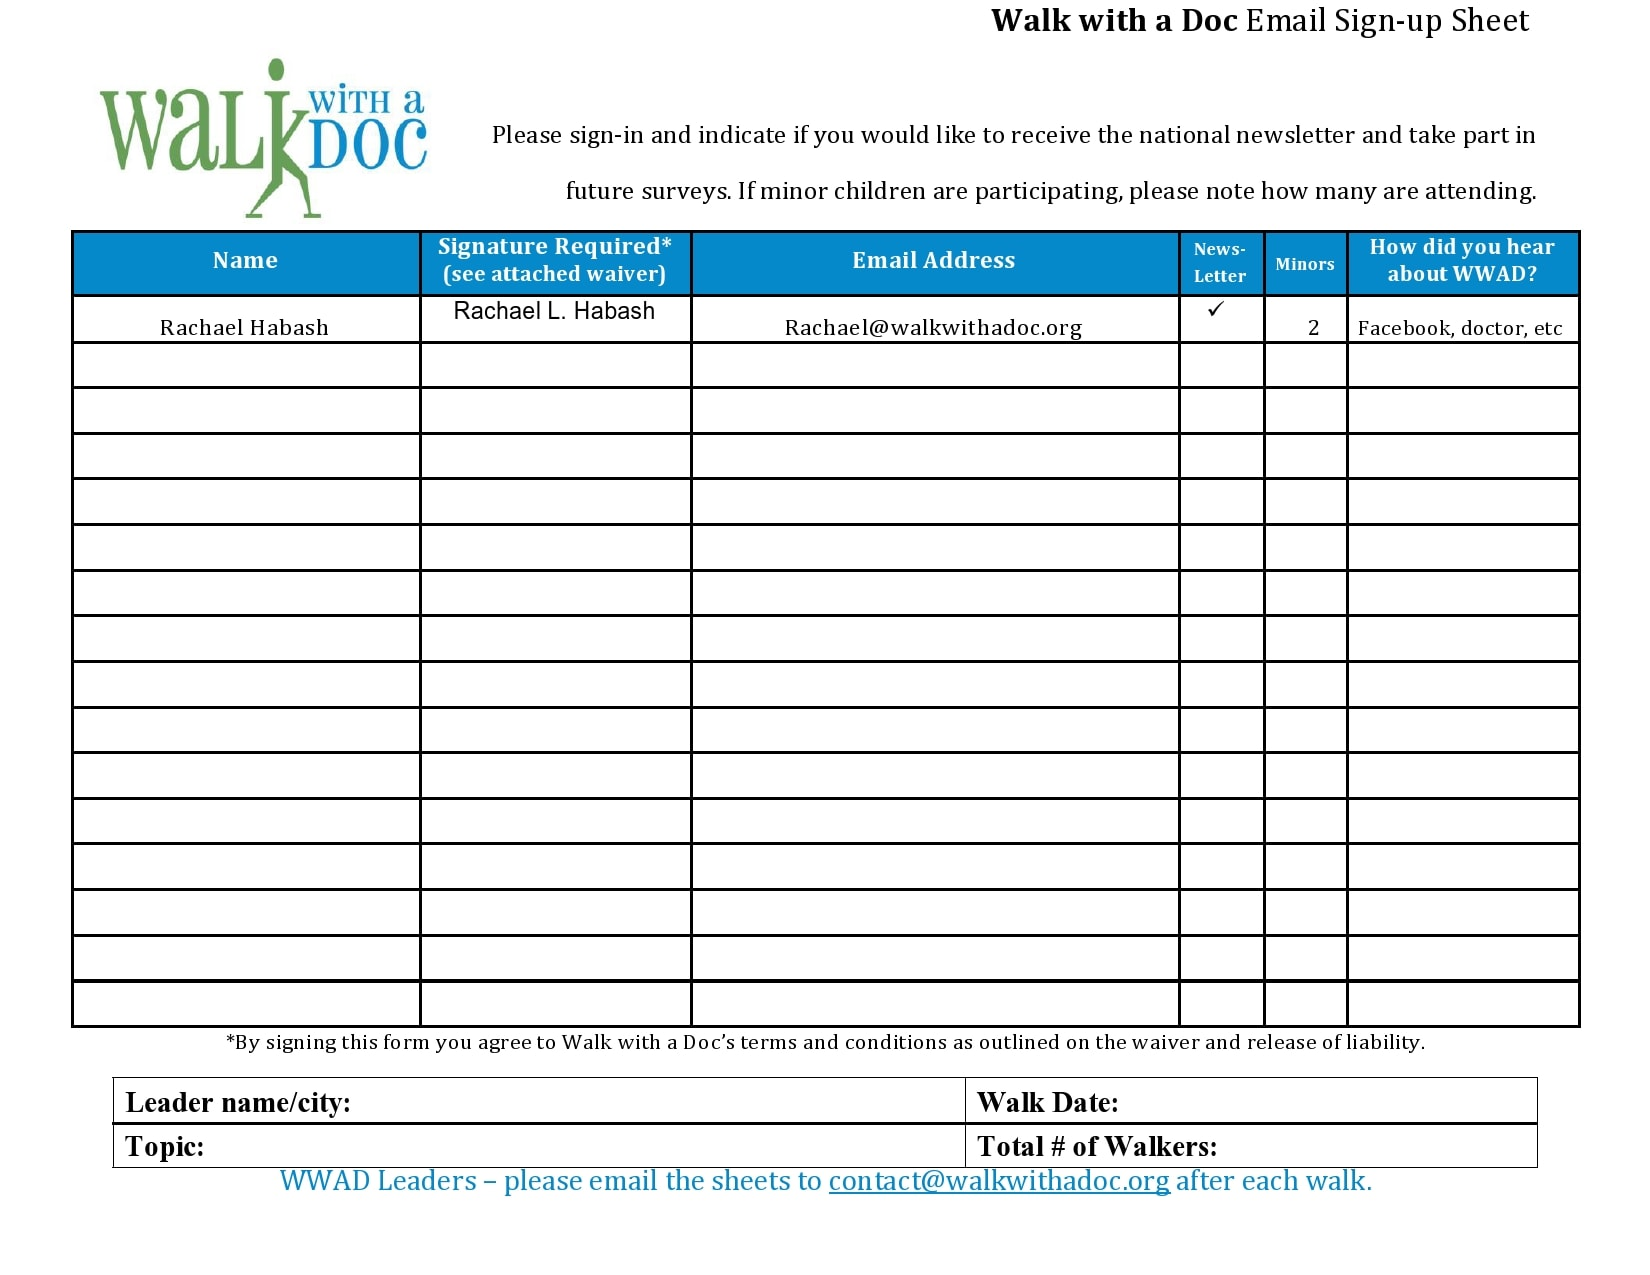 email sign up sheet 27